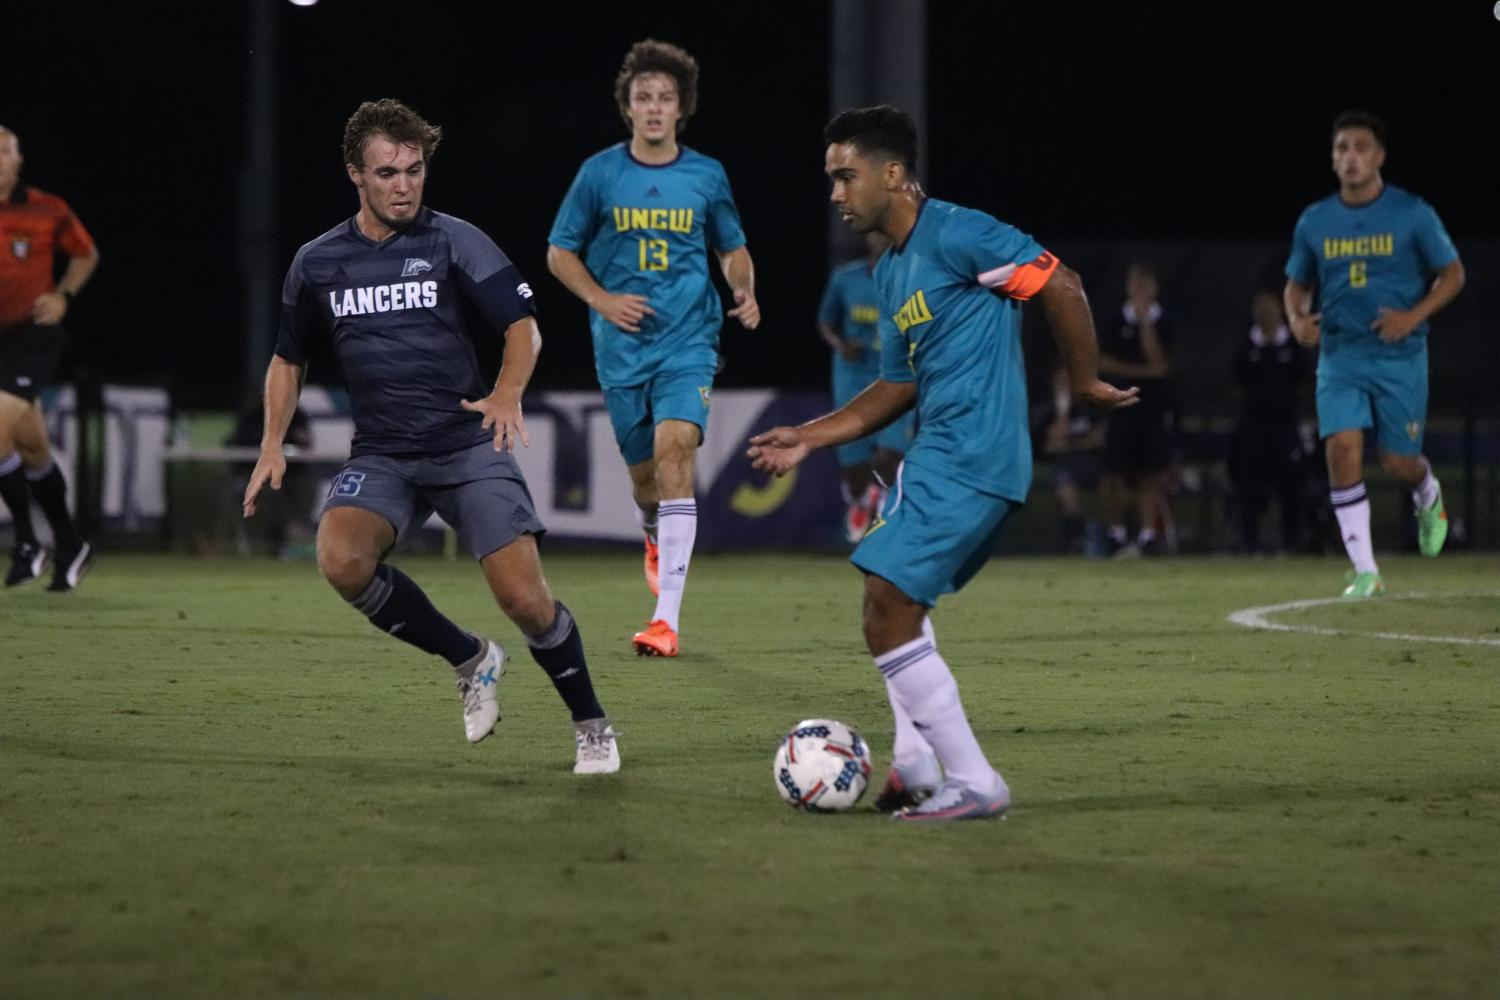 UNCW soars past Longwood with 2-0 win